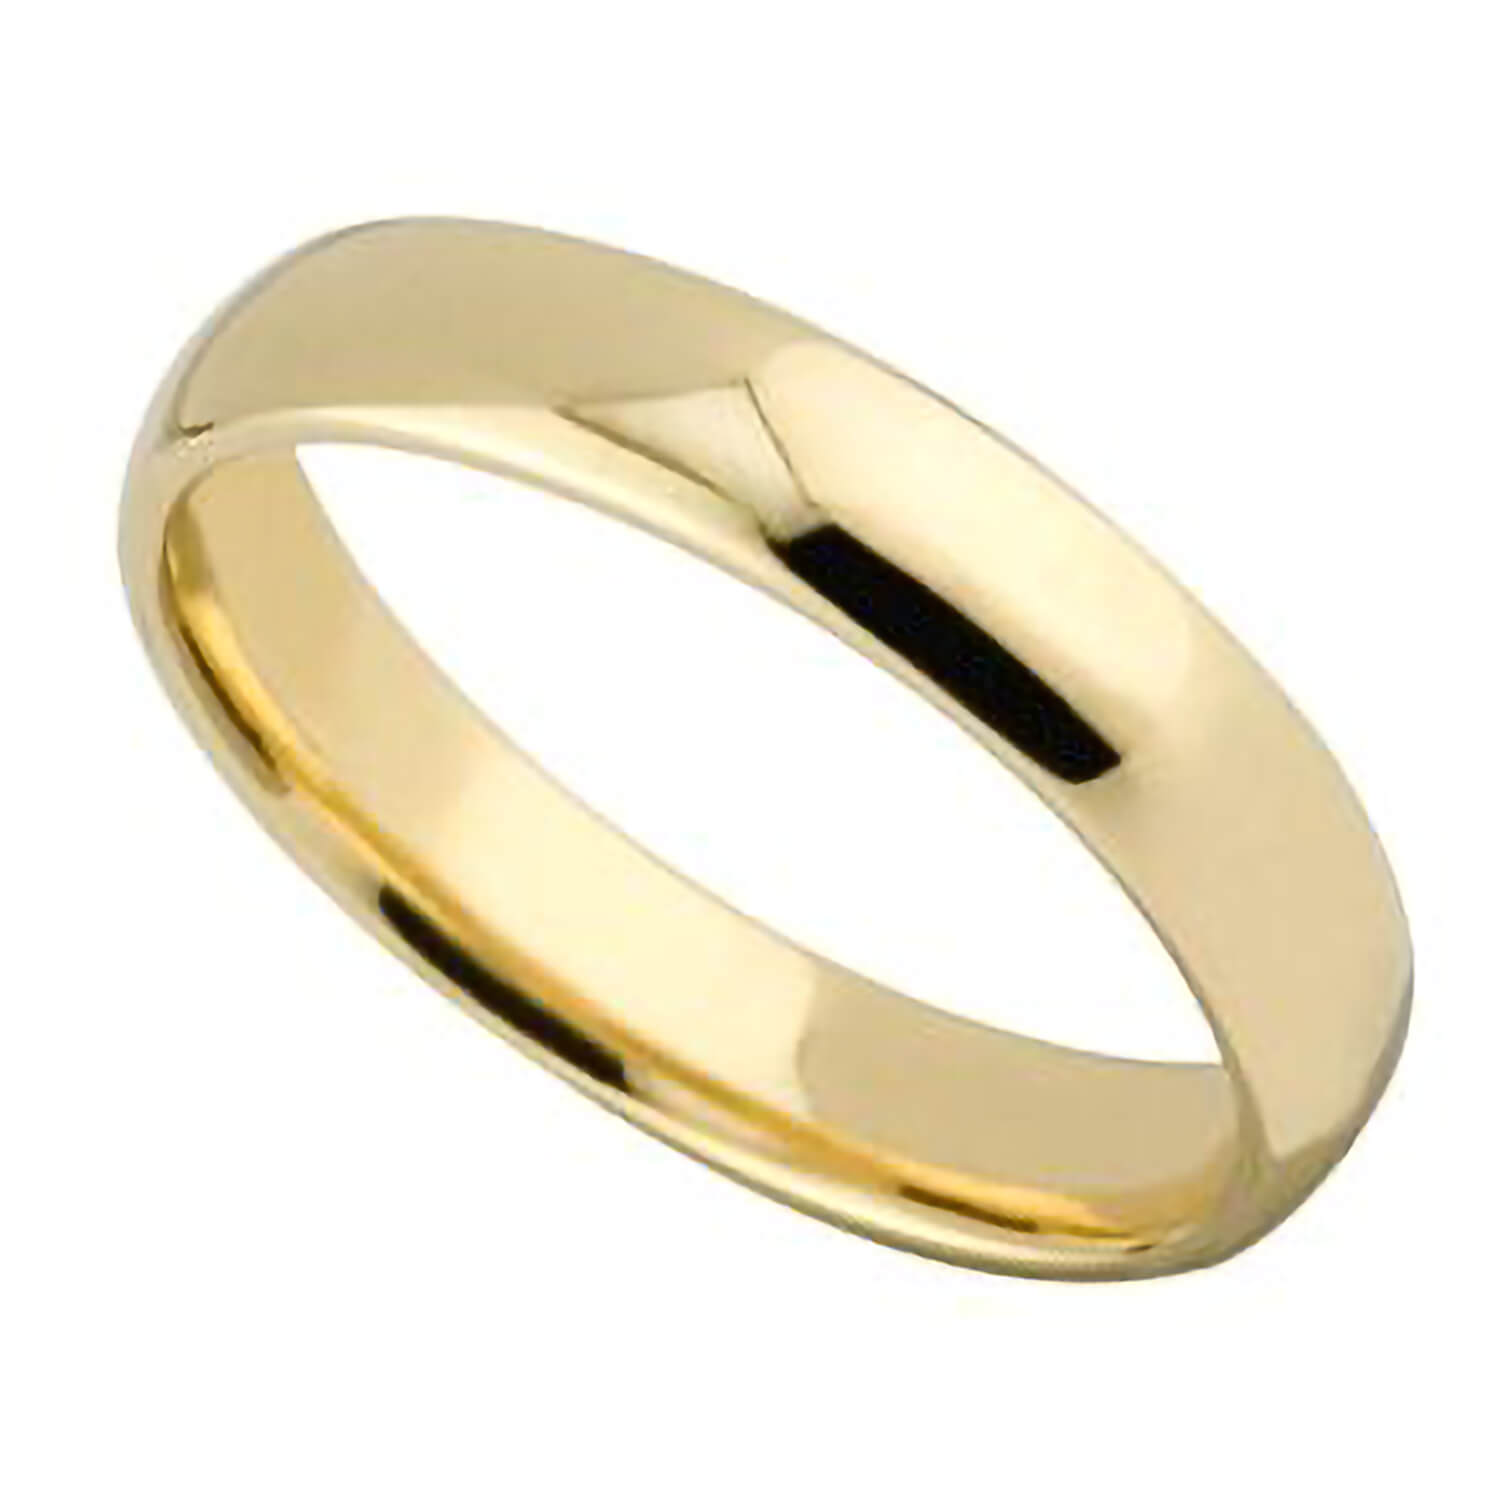 18ct gold 5mm superior court wedding ring